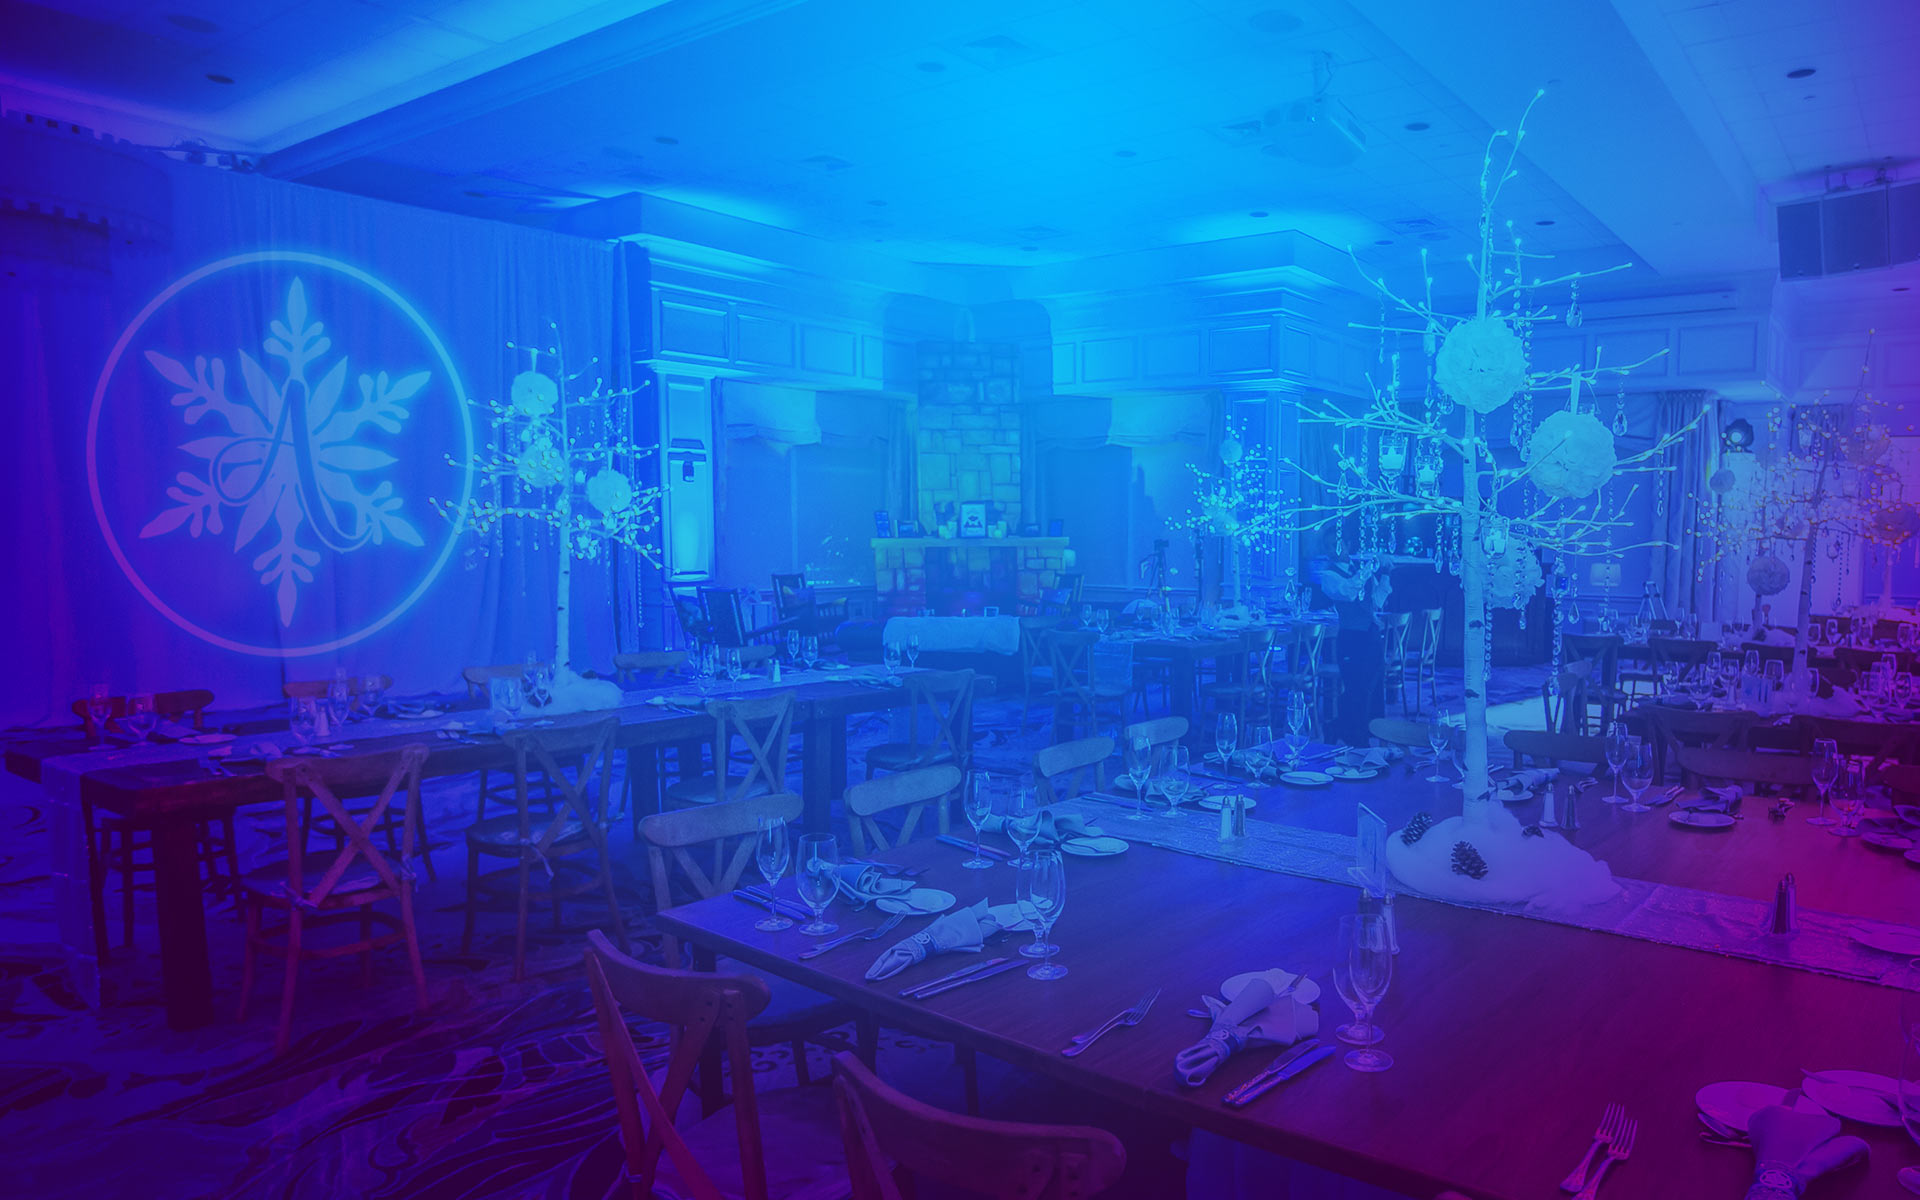 Bar mitzvah decor south florida mitzvah production by 84 west events - Creative Event Branding Design